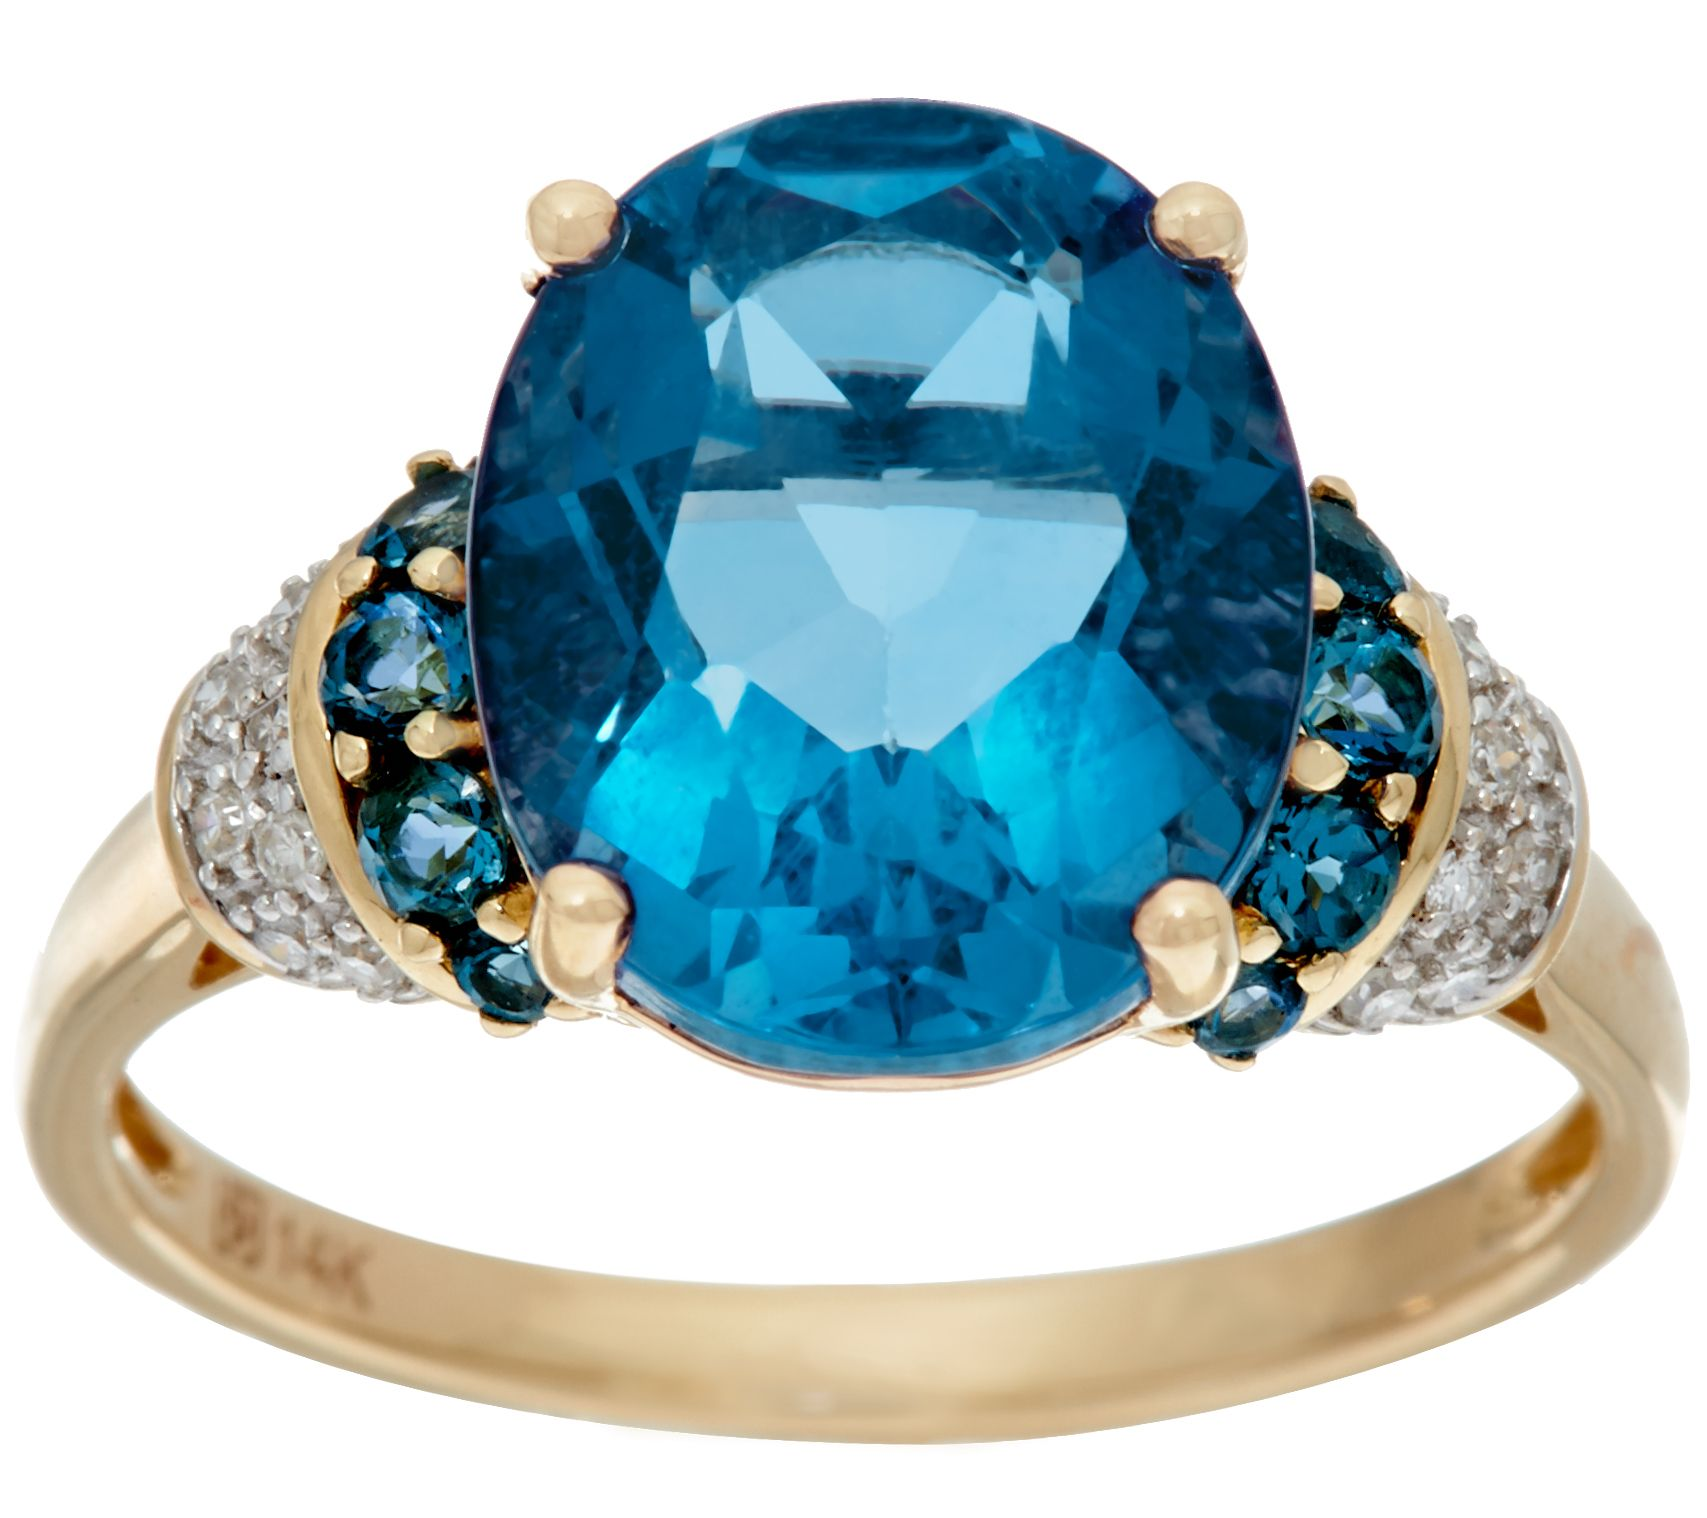 Color Change Fluorite & London Blue Topaz, 14K Gold, 5.20 cttw